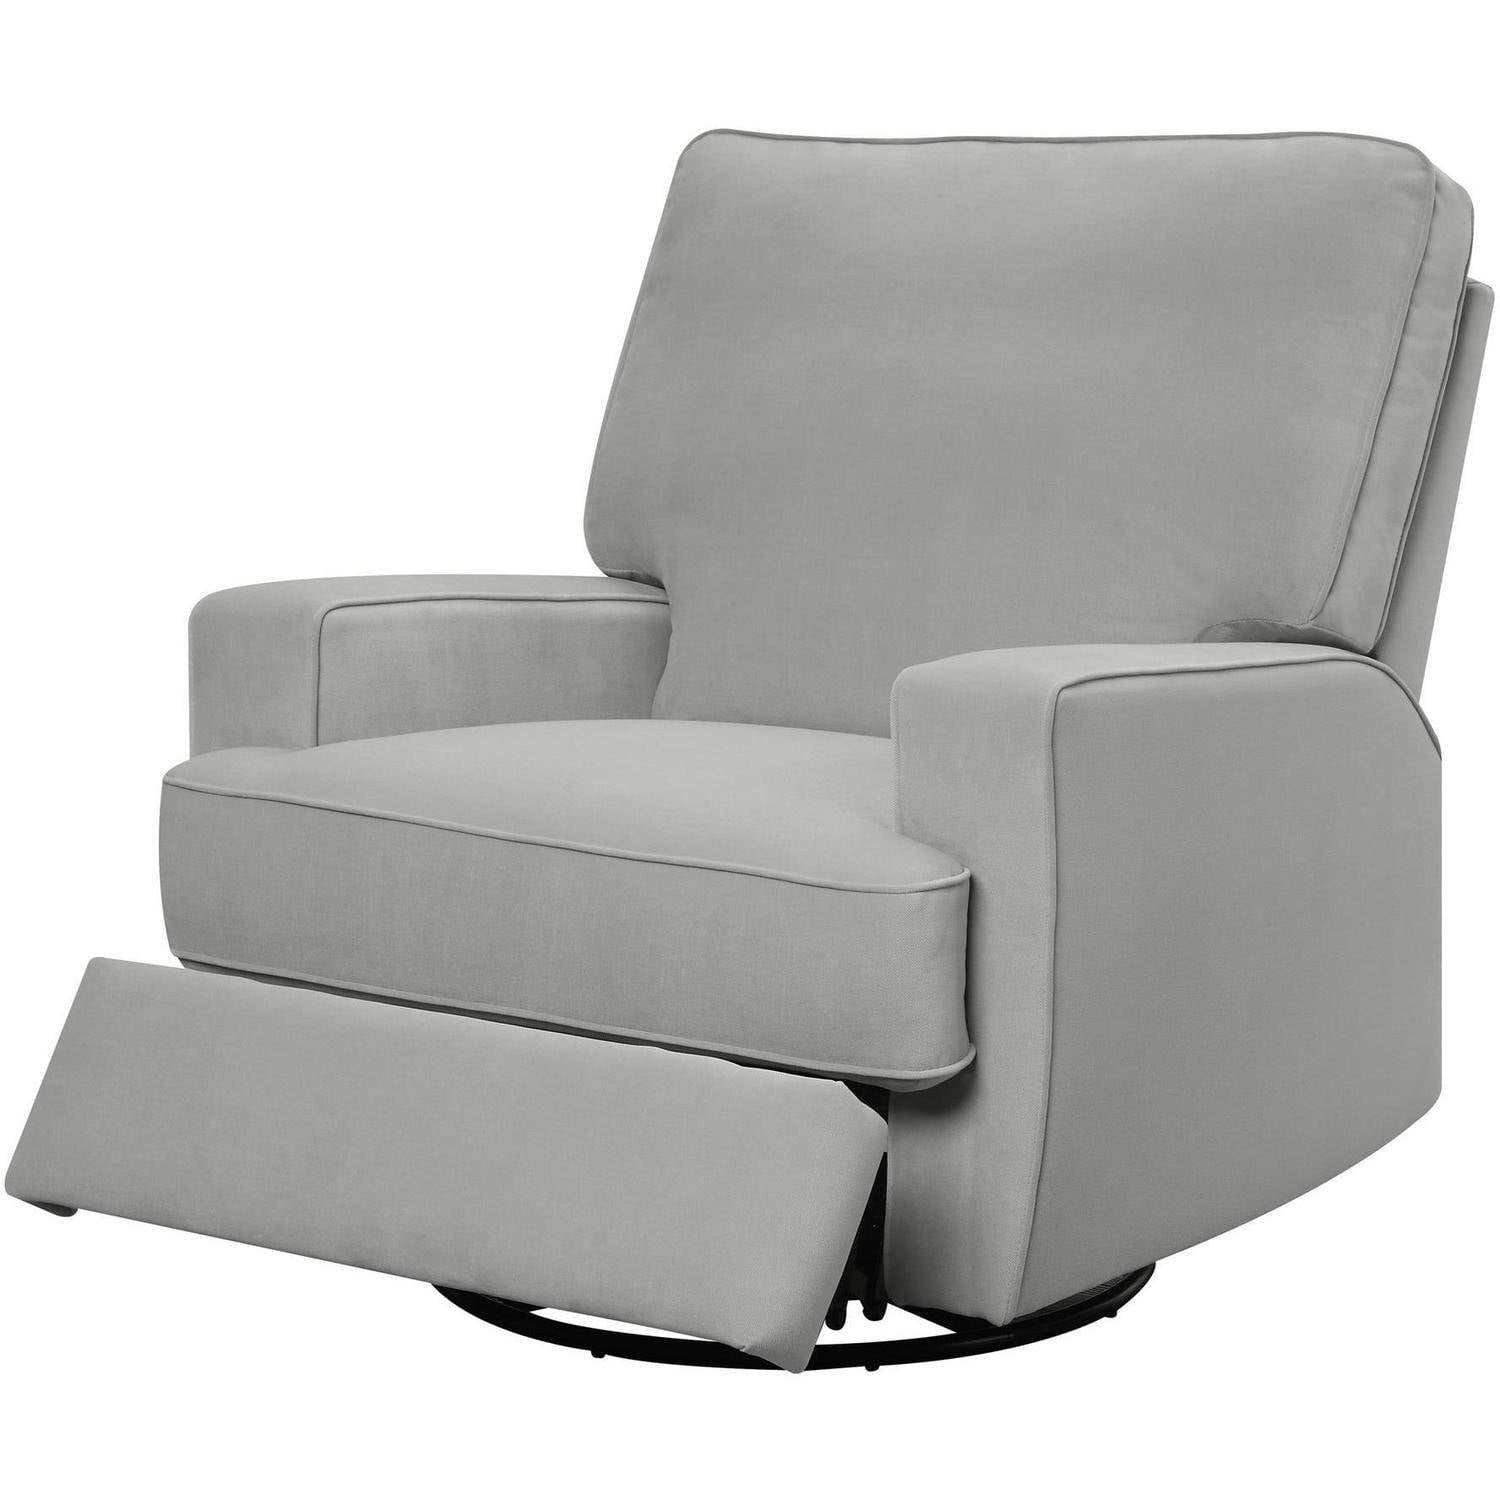 Baby Relax Rylan Swivel Gliding Recliner Choose your Color